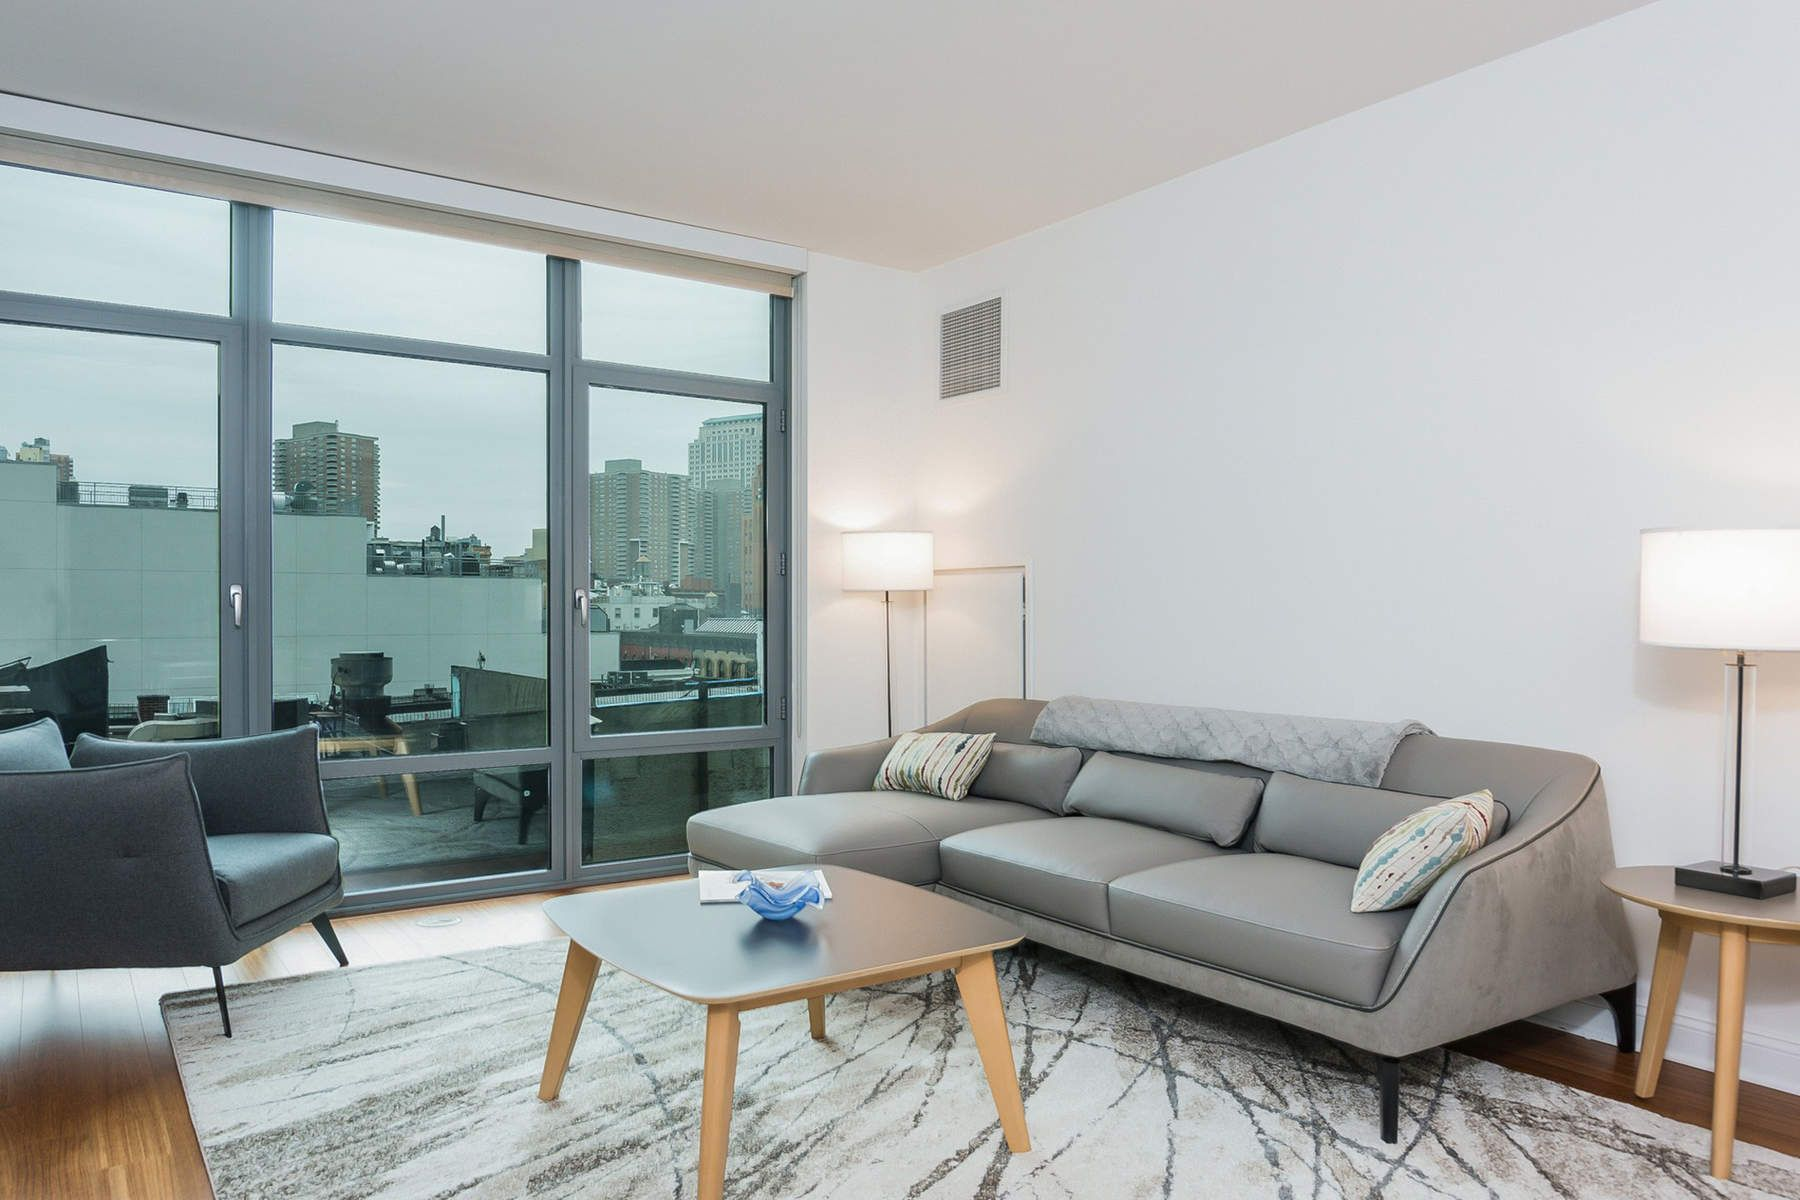 Condominium for Sale at 57 Reade Street, Apt. 8D 57 Reade Street Apt. 8D, Tribeca, New York, New York, 10007 United States